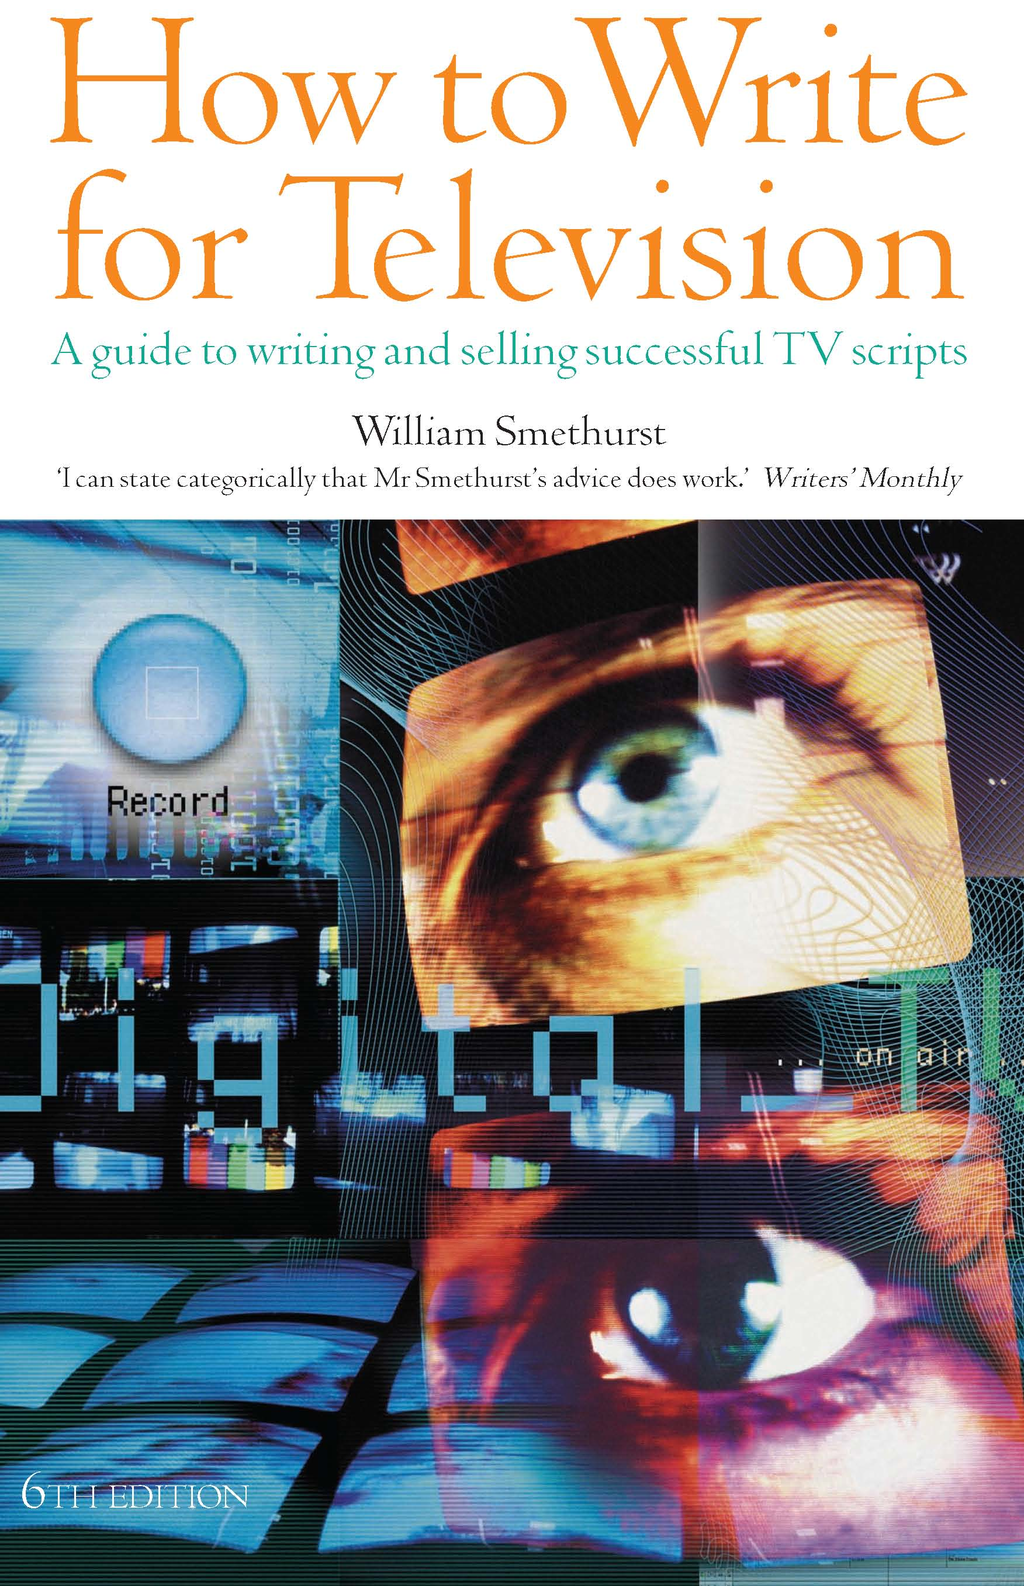 How to Write for Television A guide to writing and selling successful TV Scripts